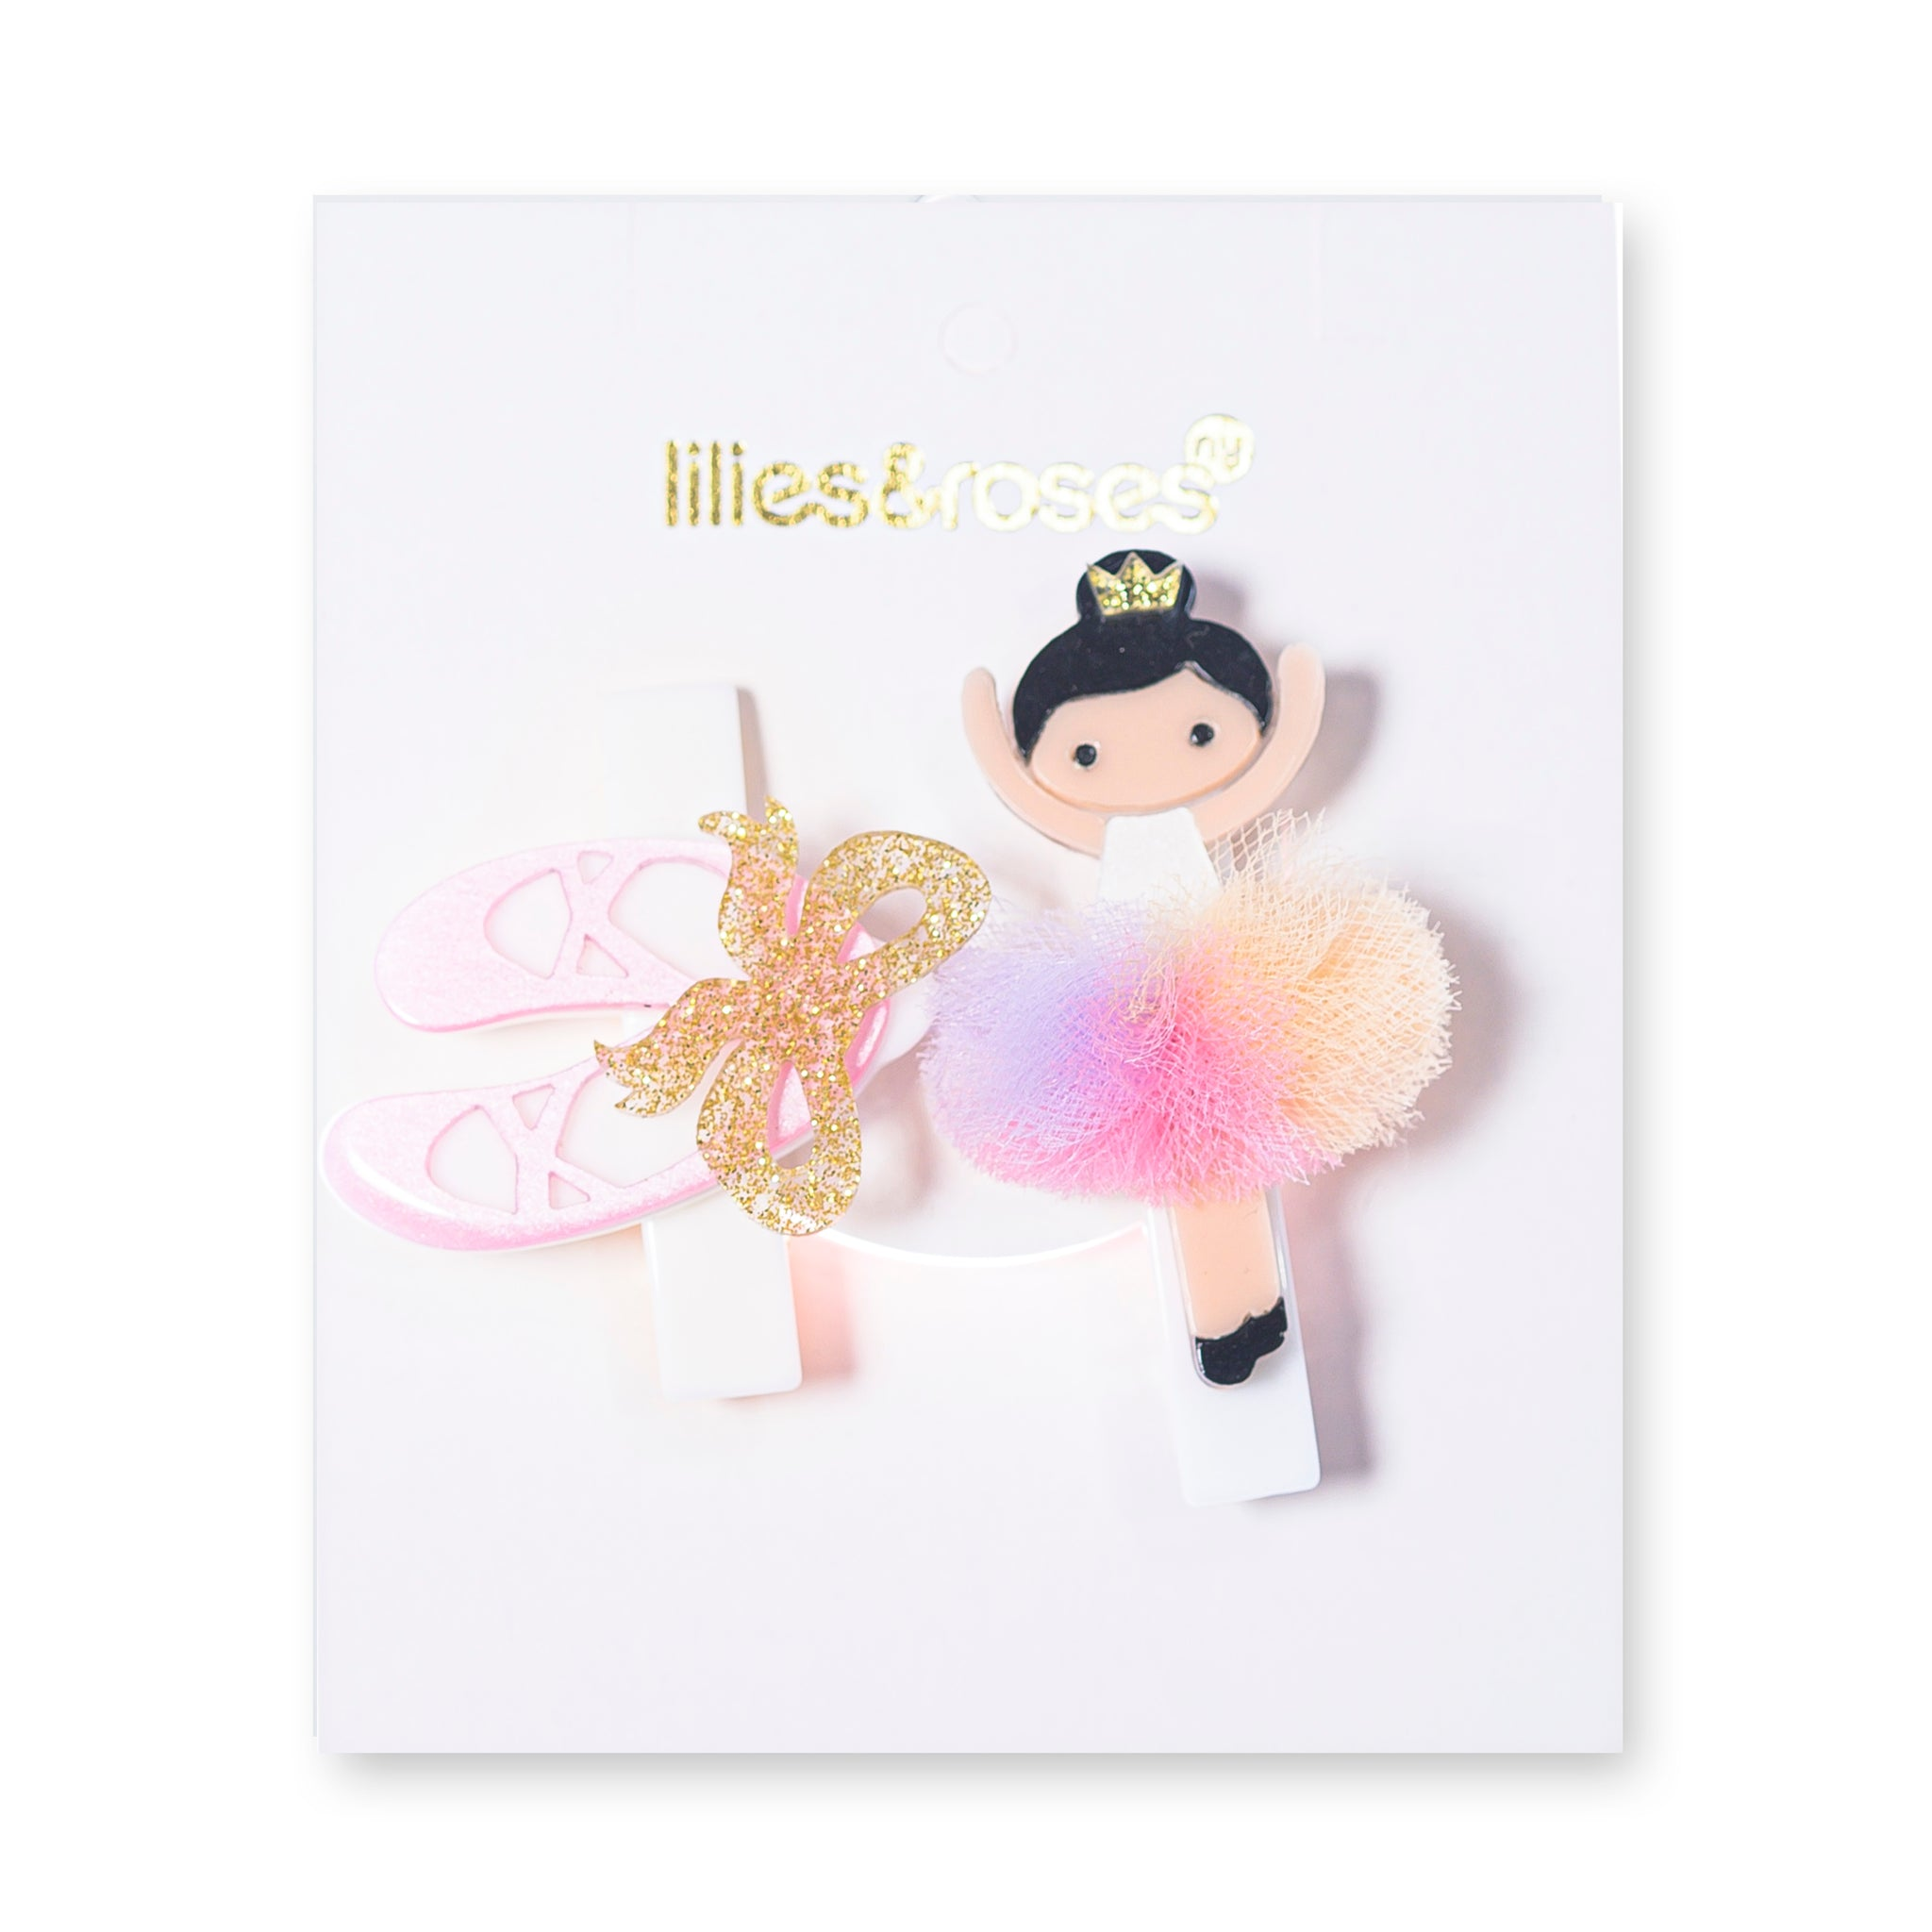 Slippers + Ballerina Hair Clips -  Lilies & Roses NY